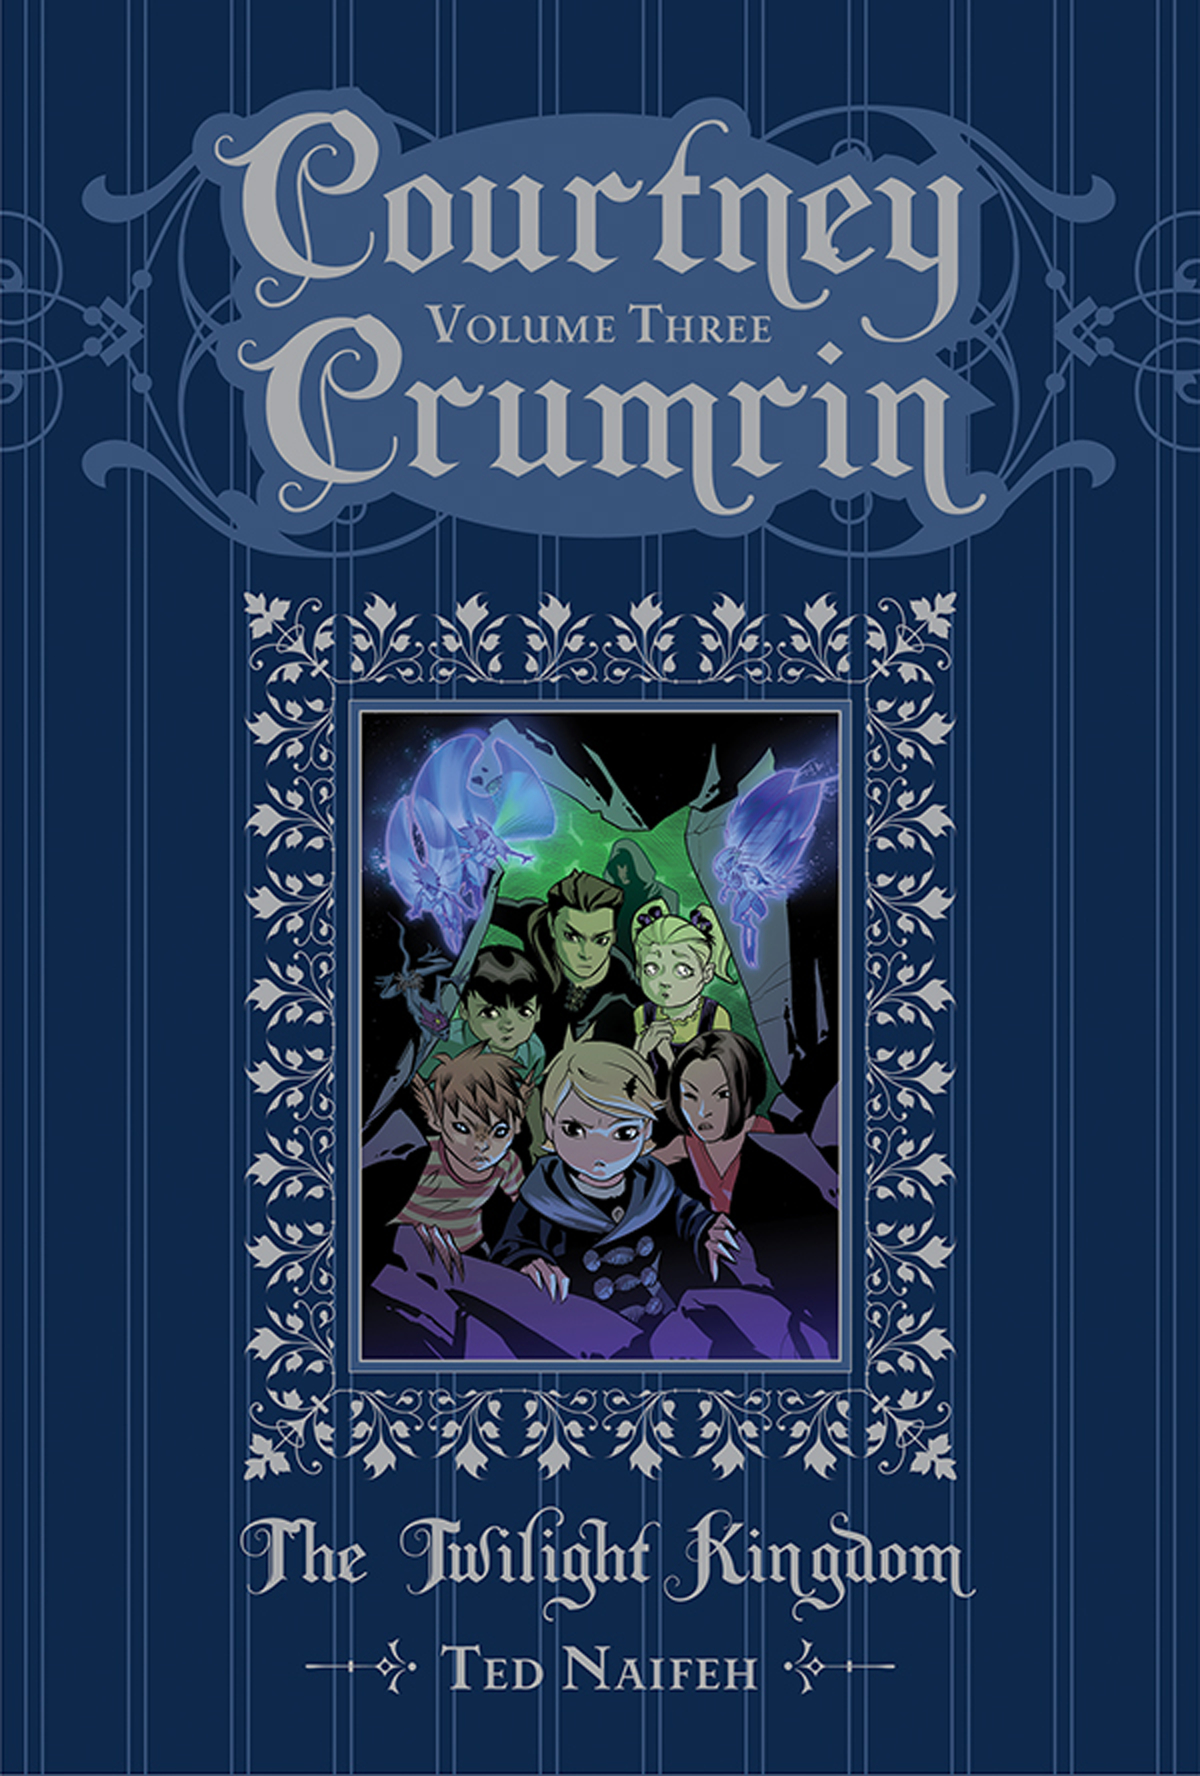 COURTNEY CRUMRIN SPEC ED HC VOL 03